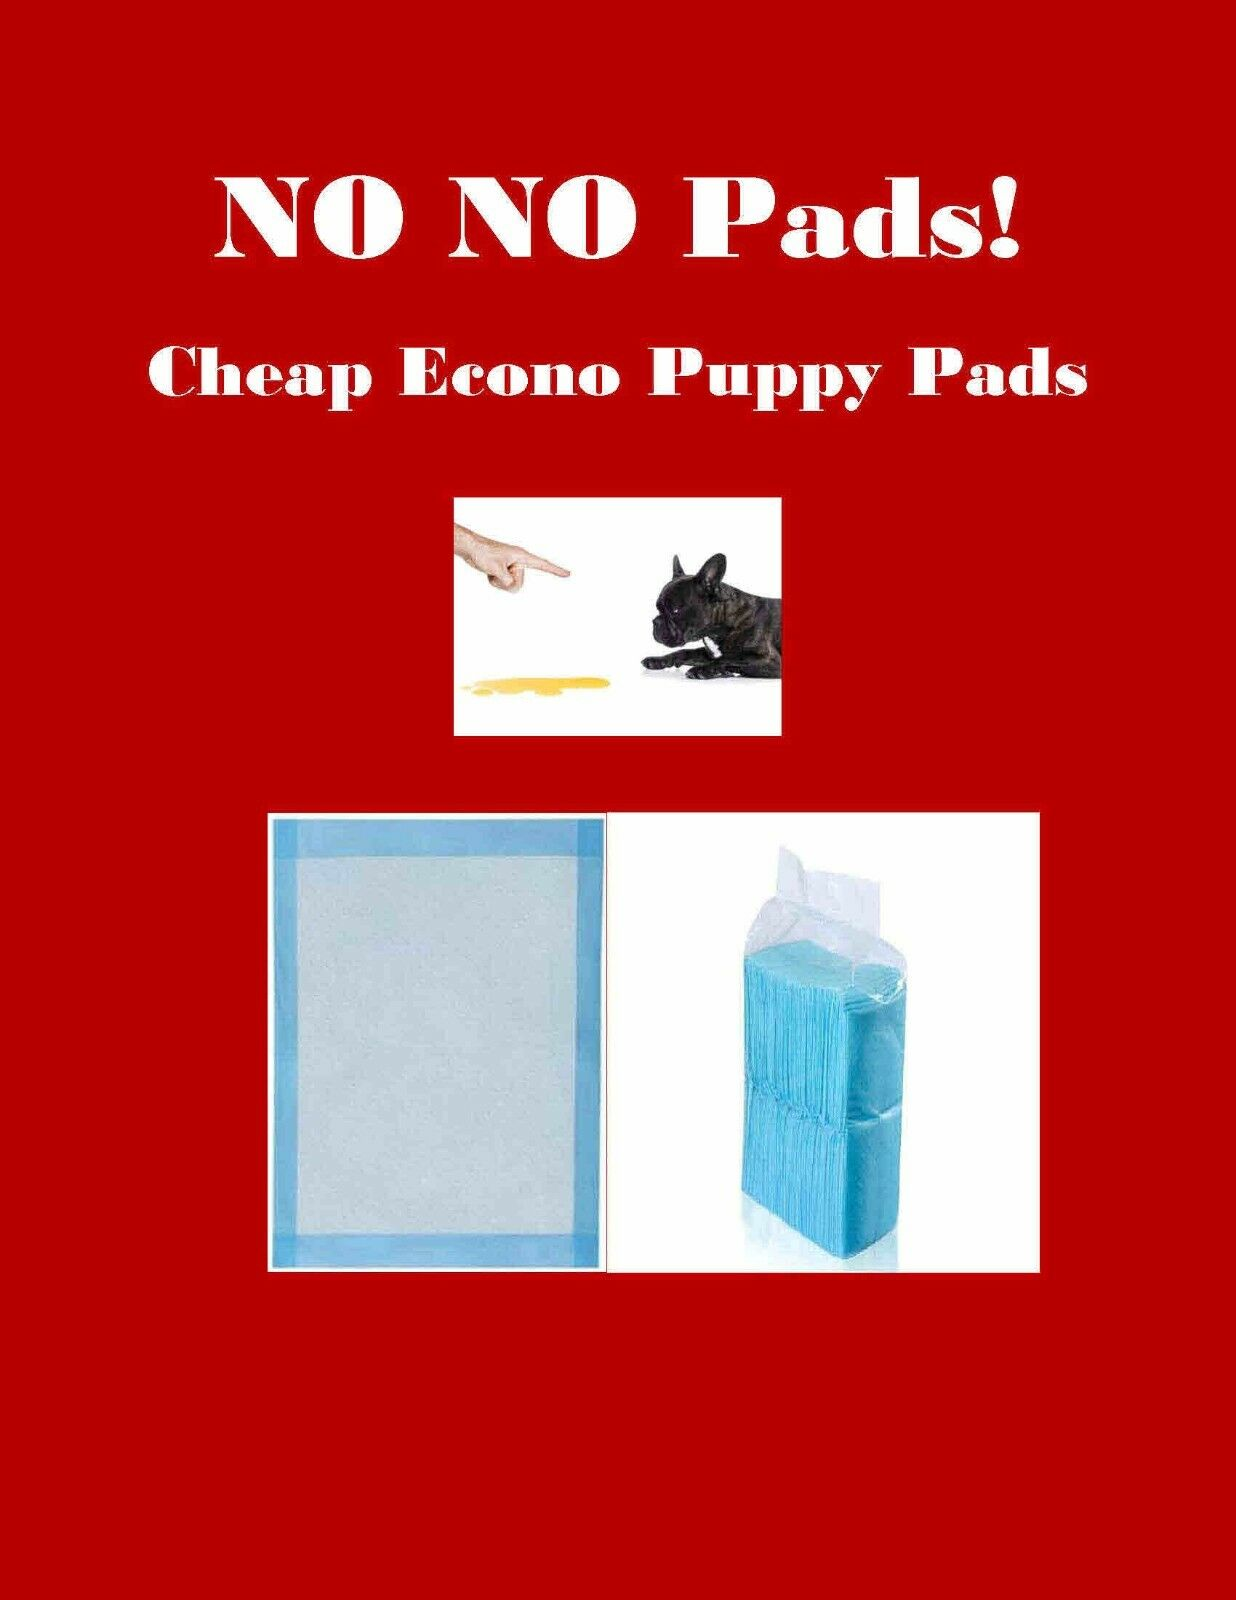 23x24 400 CHEAP NO Pads Puppy Training Pads Lightweight Economy Pads